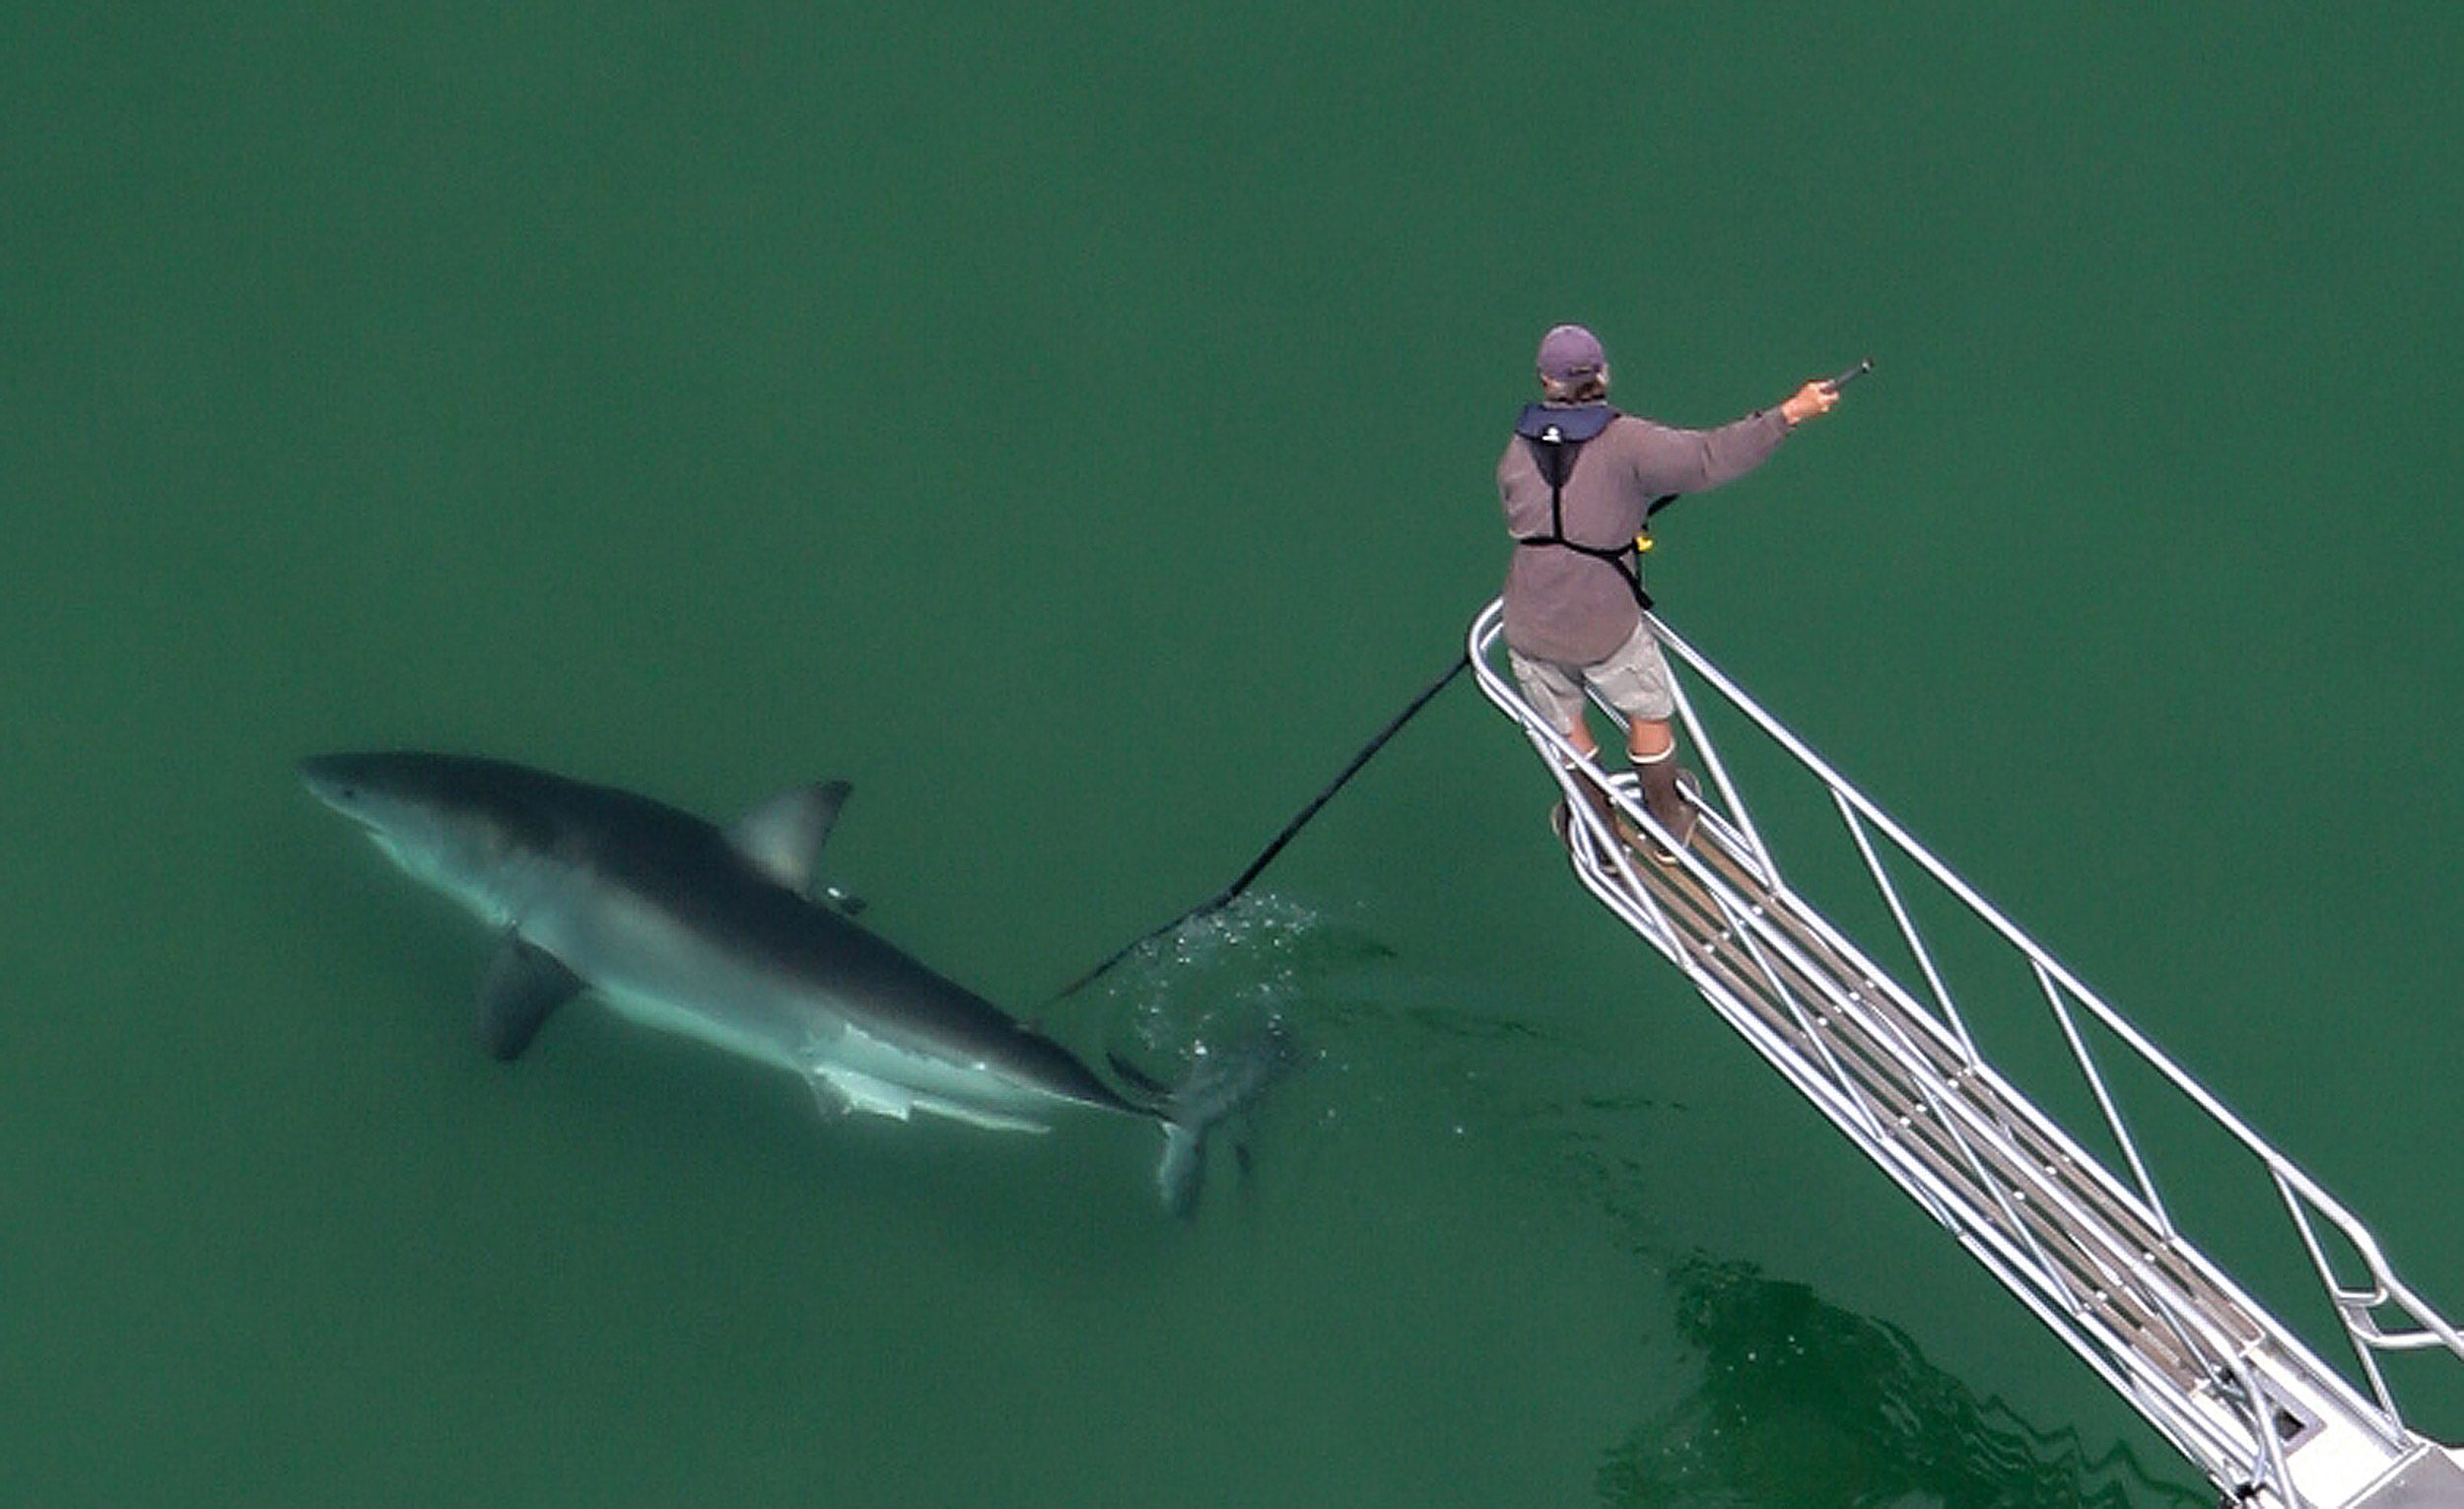 Greg Skomal tags a great white shark in the waters off Cape Cod.